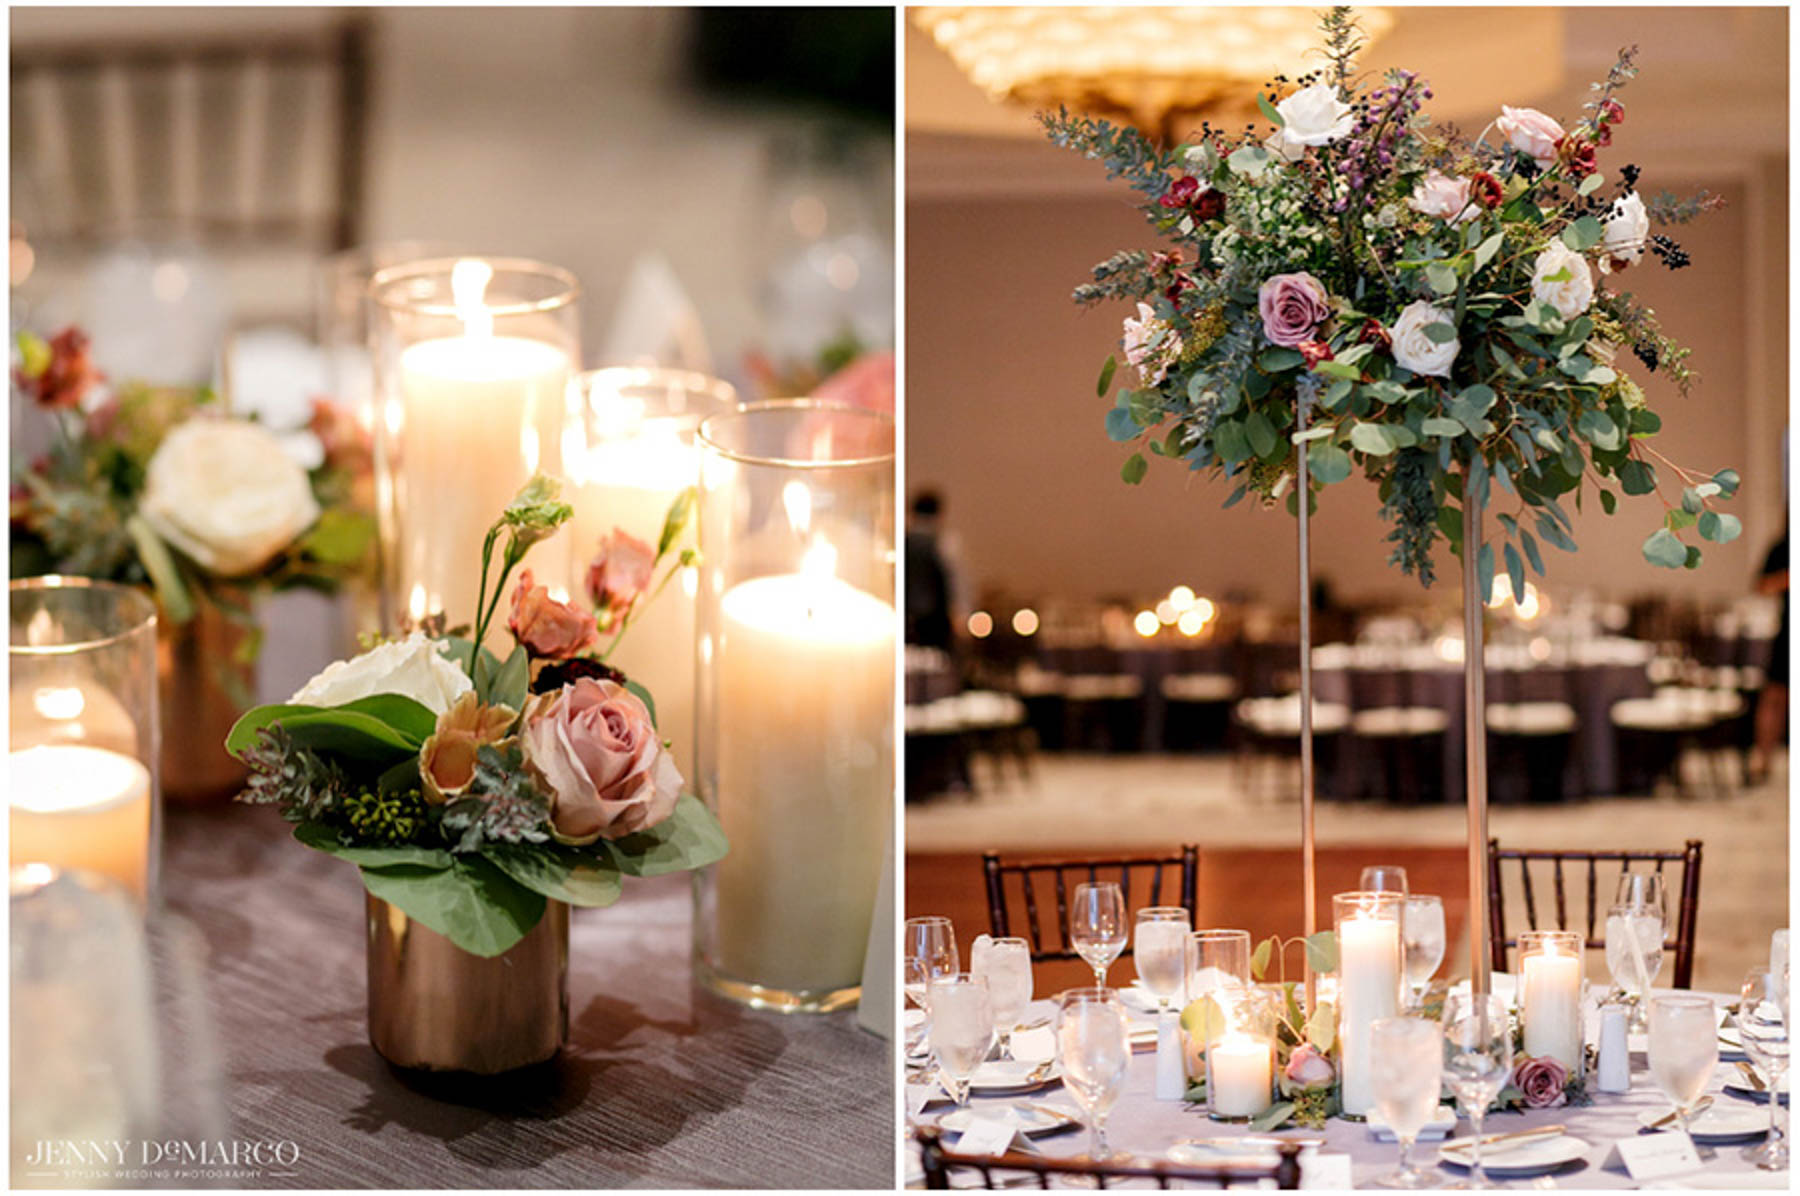 flowers surrounded by candles at reception venue